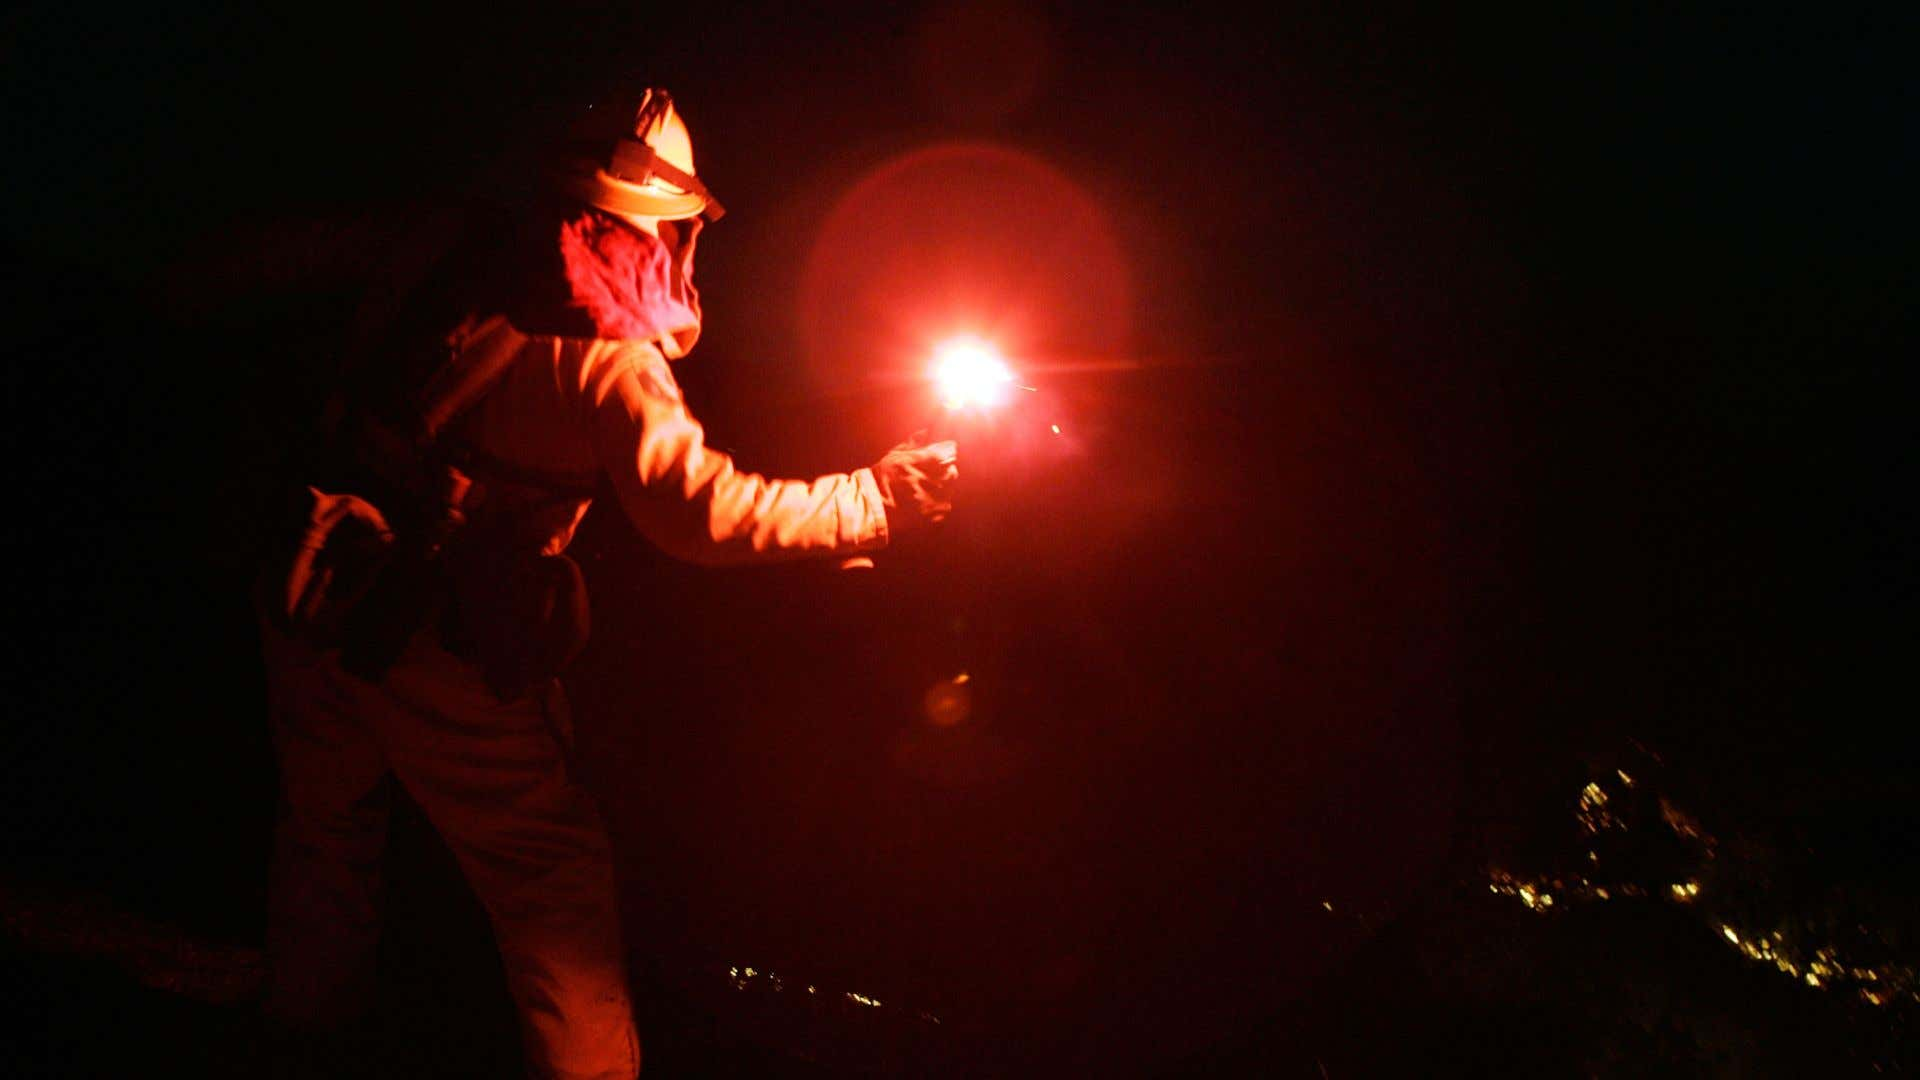 A firefighter throwing a flare.